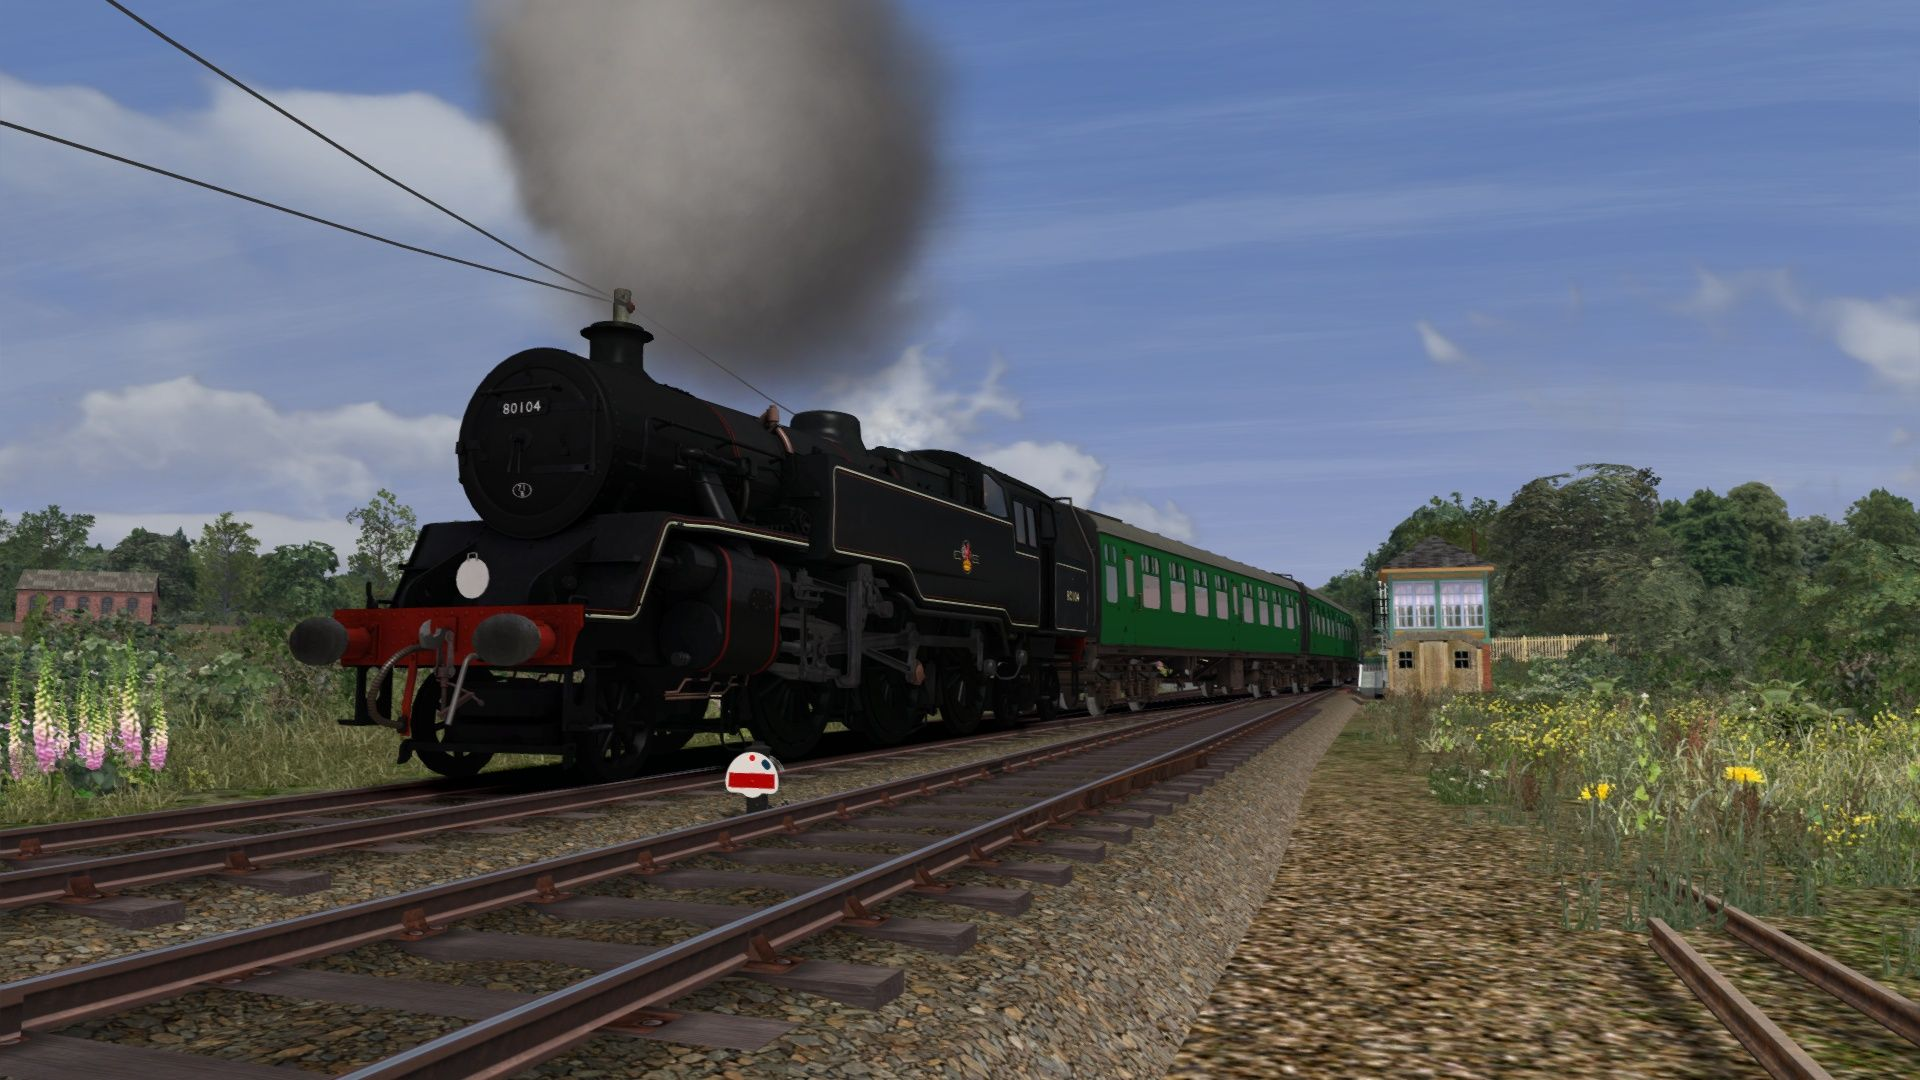 Screenshot_Swanage Railway_50.61994--2.02891_16-13-24